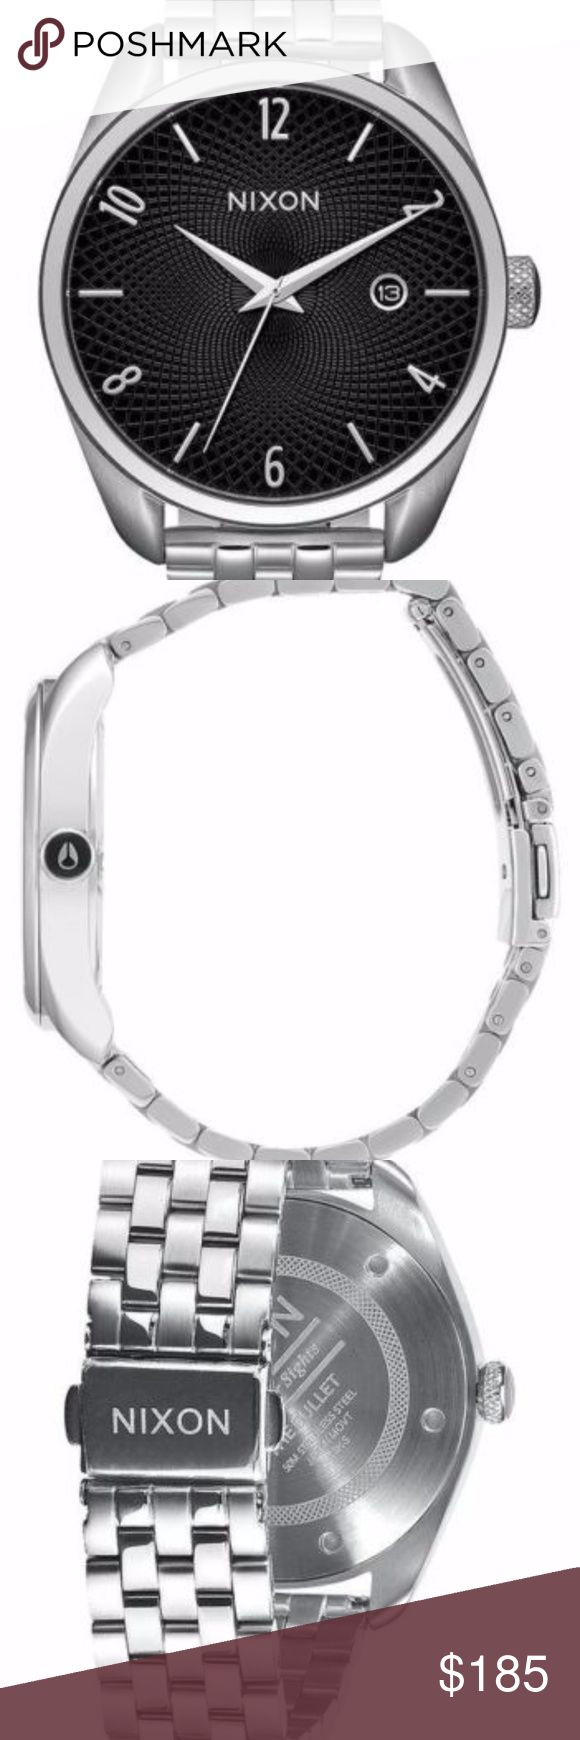 Nixon Women's Watch Bullet Bracelet Nixon Bullet Bracelet Women's Quartz Watch A418000 Black Silver Brand New In Box  WATCH MOVEMENT: Miyota Japanese quartz 3 hand movement with date function.   WATCH DIAL: The dial features applied stainless steel hour and number indices custom guilloche pattern and date window at 3 o'clock.   WATCH CASE: 38mm, 5 ATM custom stainless steel case with hardened mineral crystal custom crown with enamel fill, stainless steel screw down caseback, and spring pin…